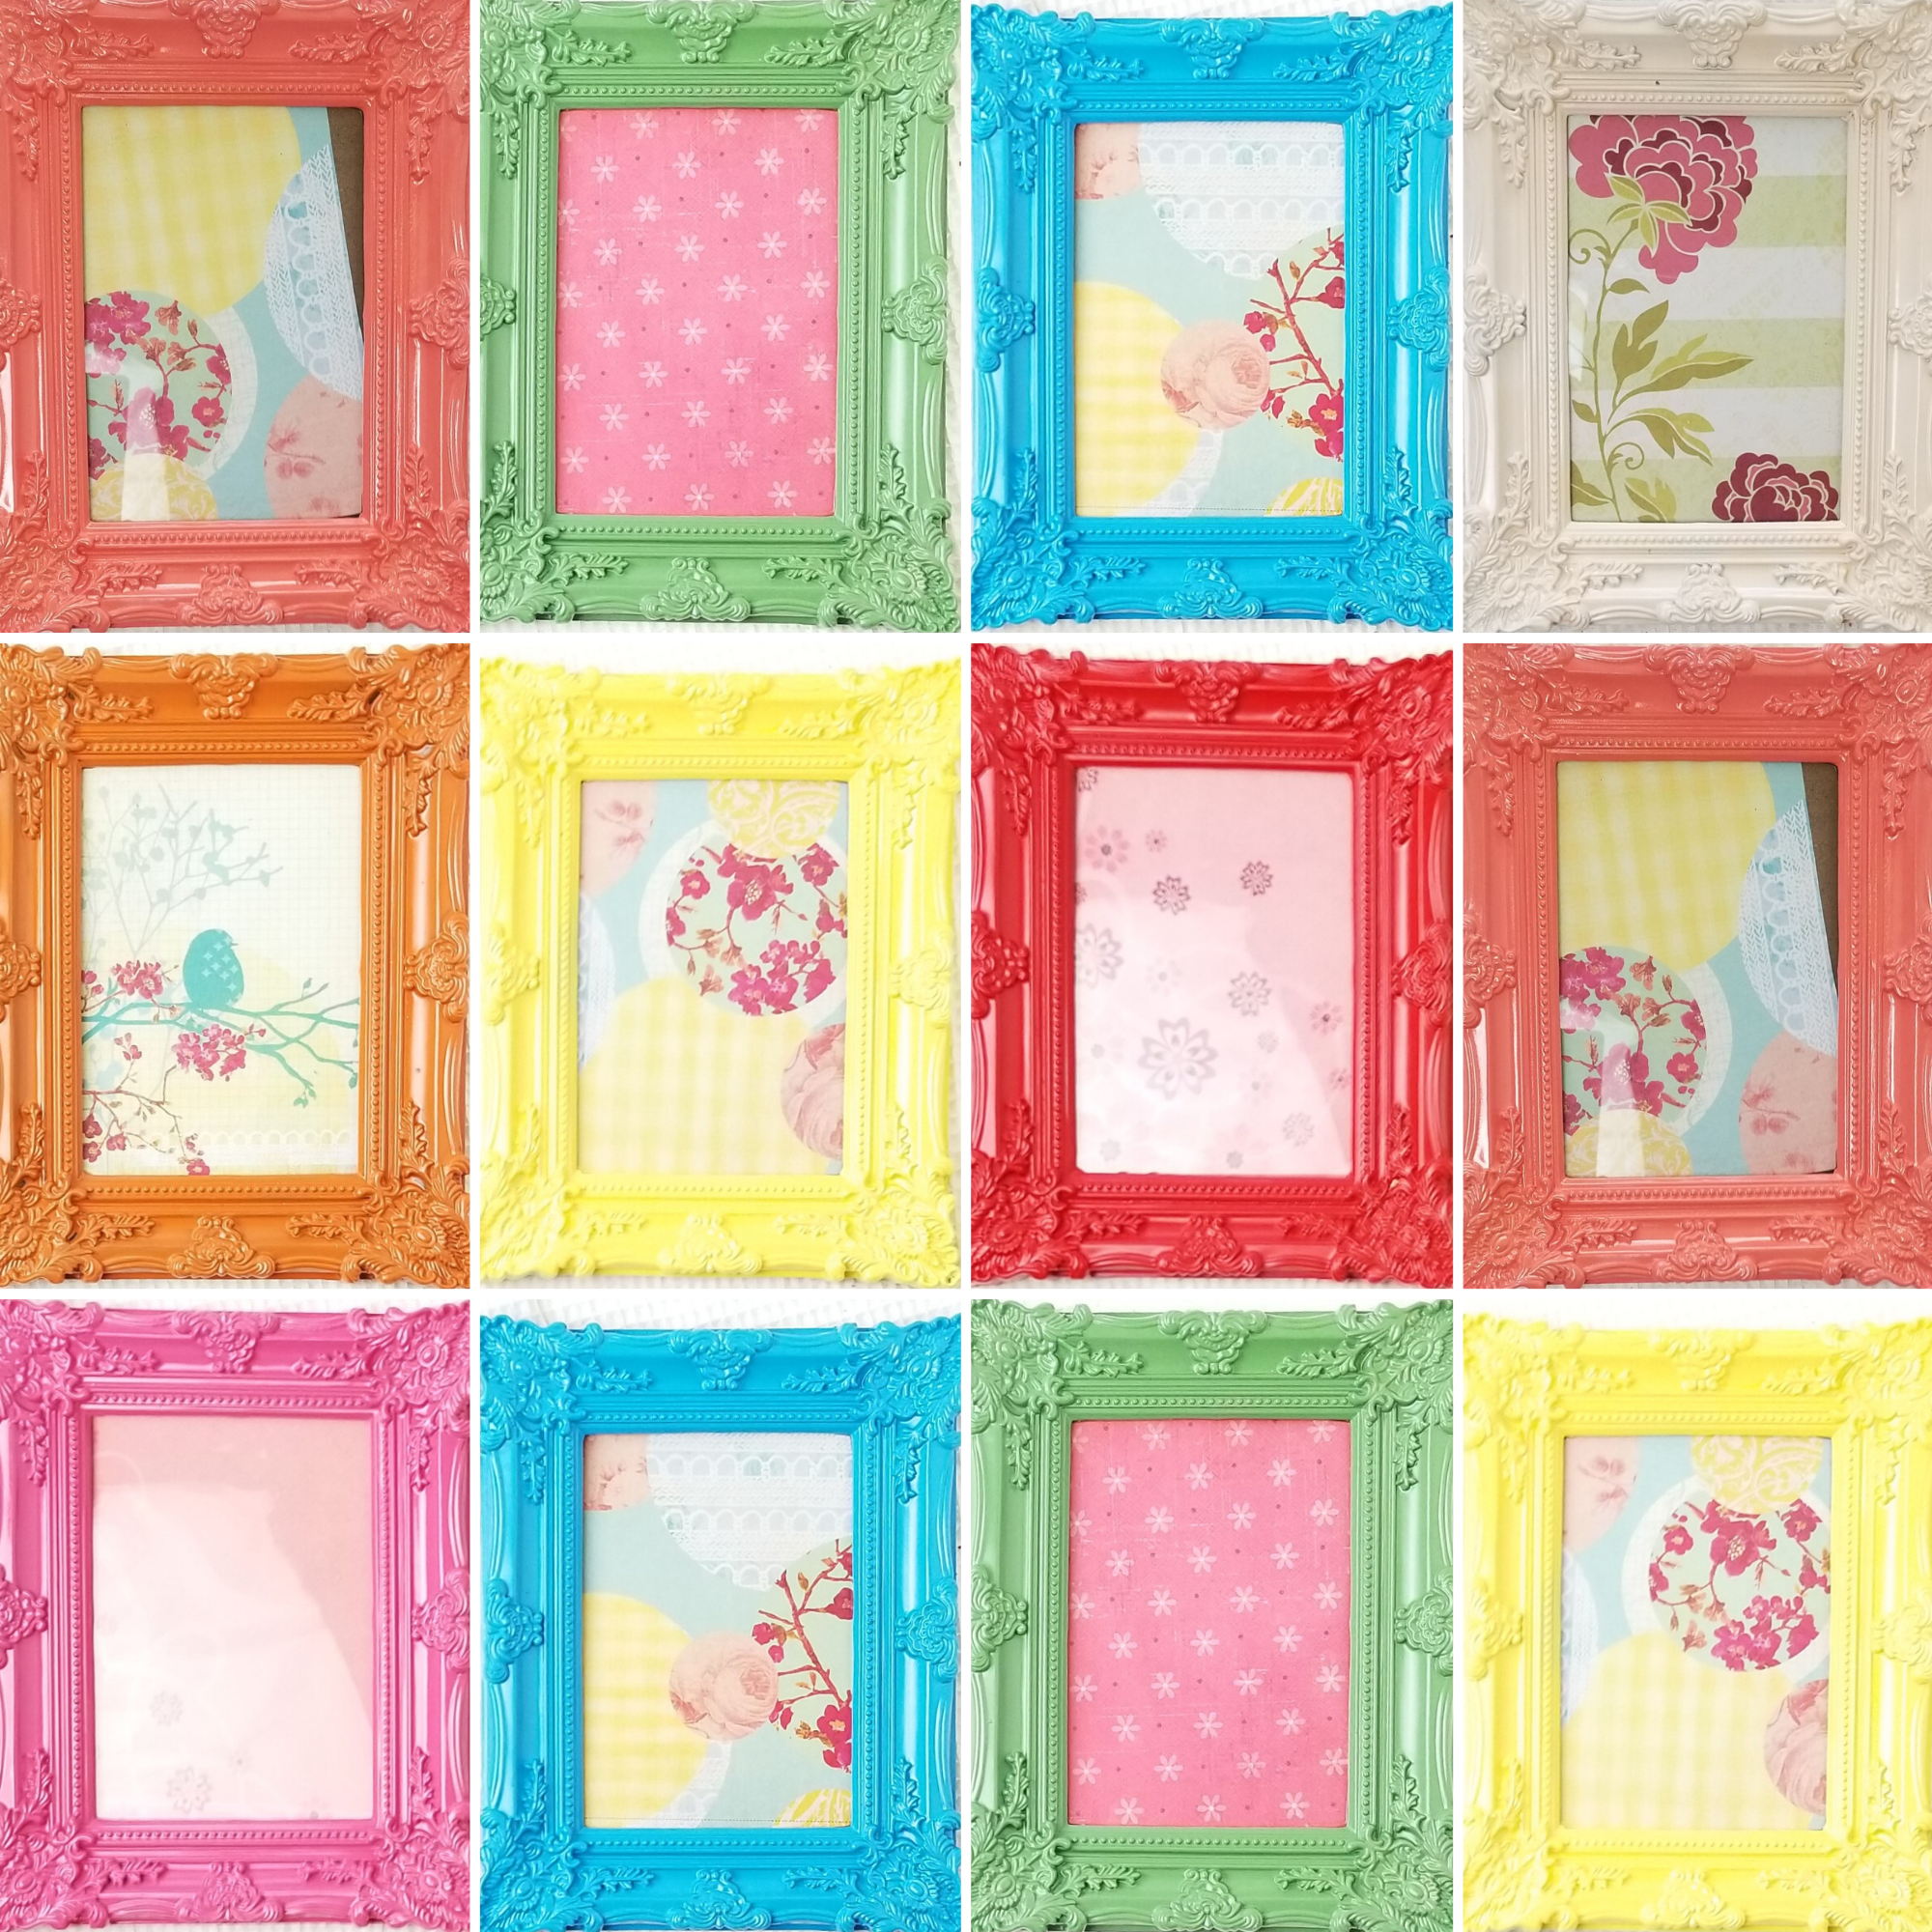 8 X 10 Mat With 4x6 Opening